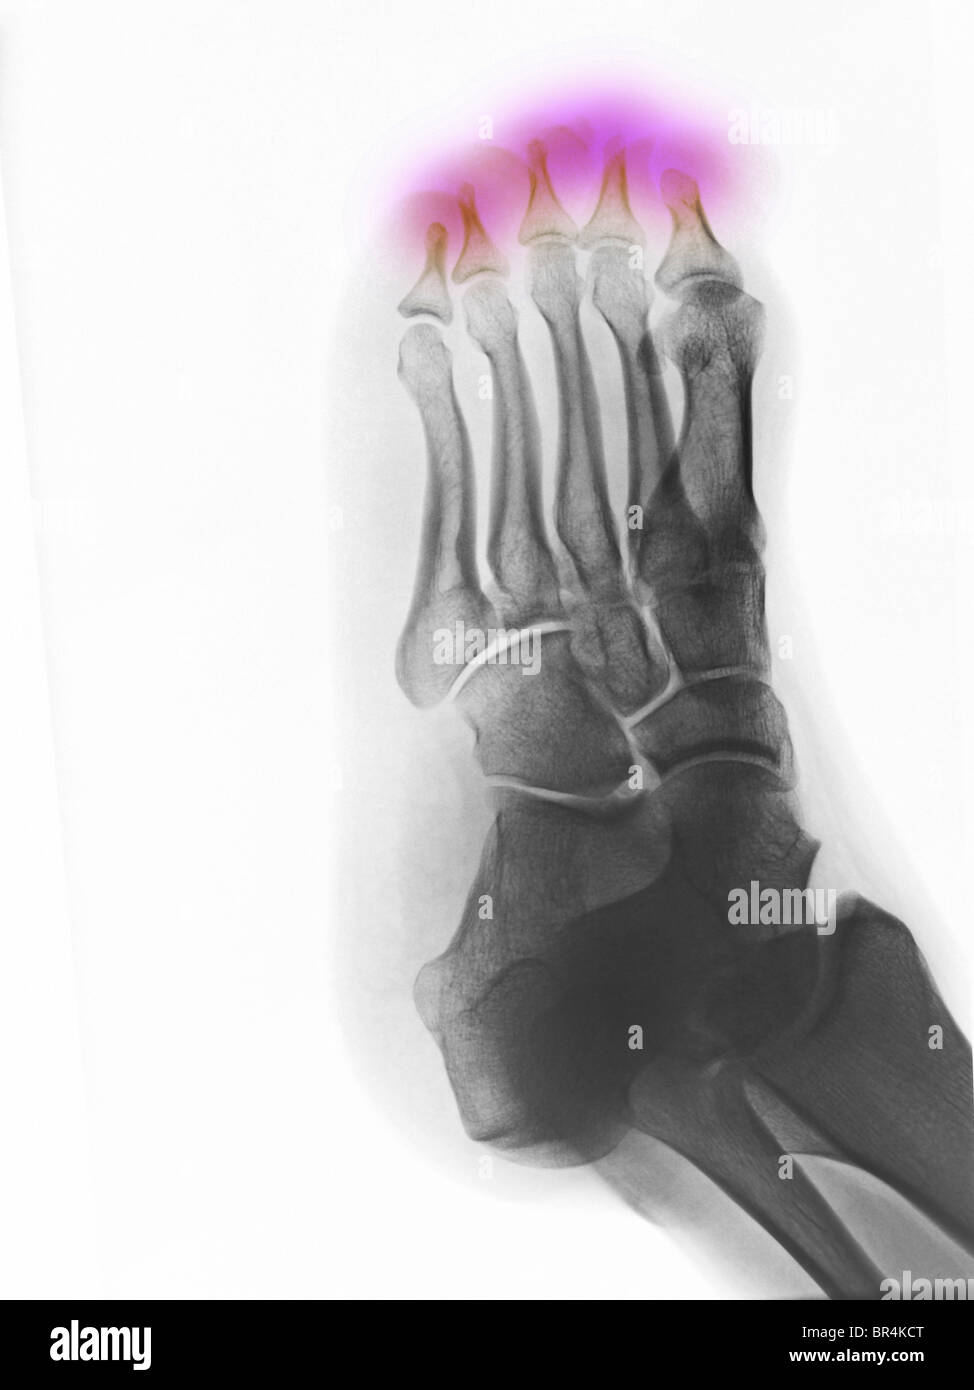 Foot x-ray of a 25 year old man showing congenital absence of the distal bones in the toes - Stock Image